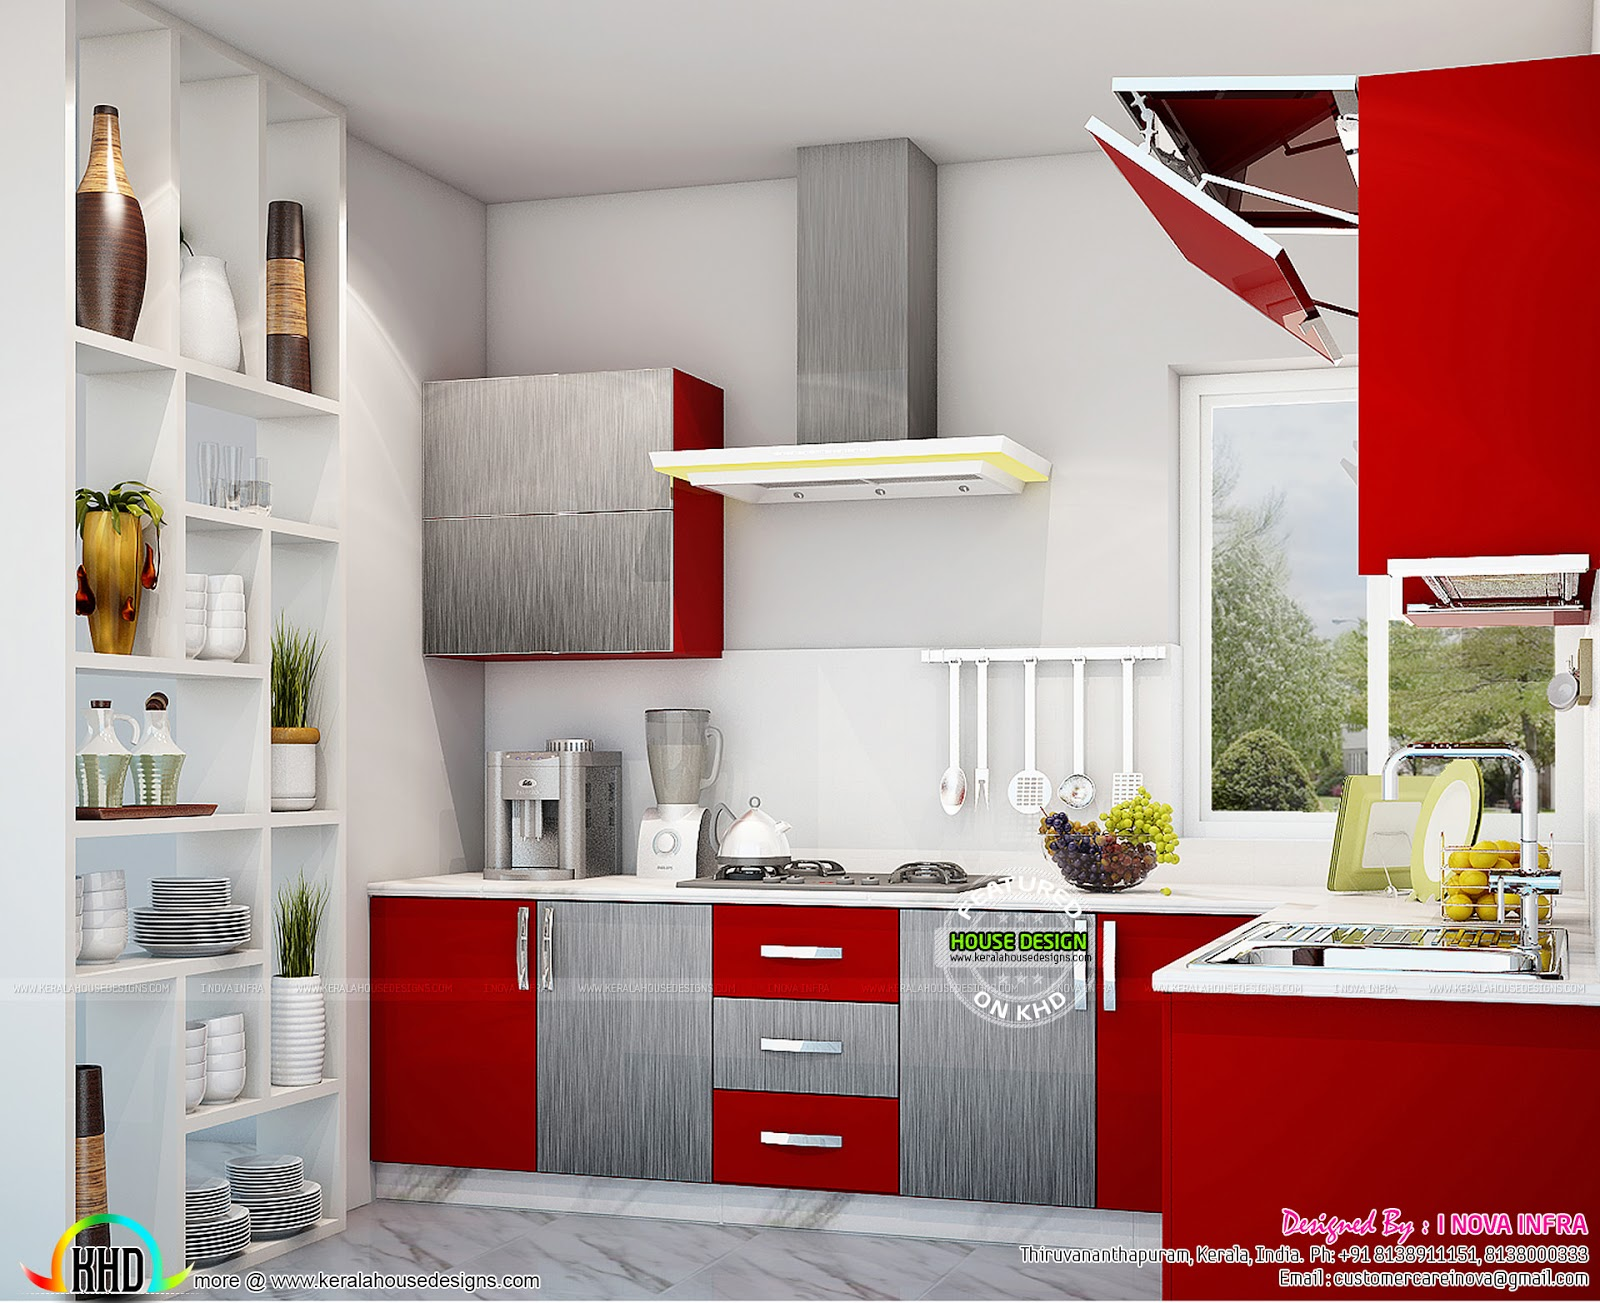 Kitchen interior works at trivandrum kerala home design for House design kitchen ideas